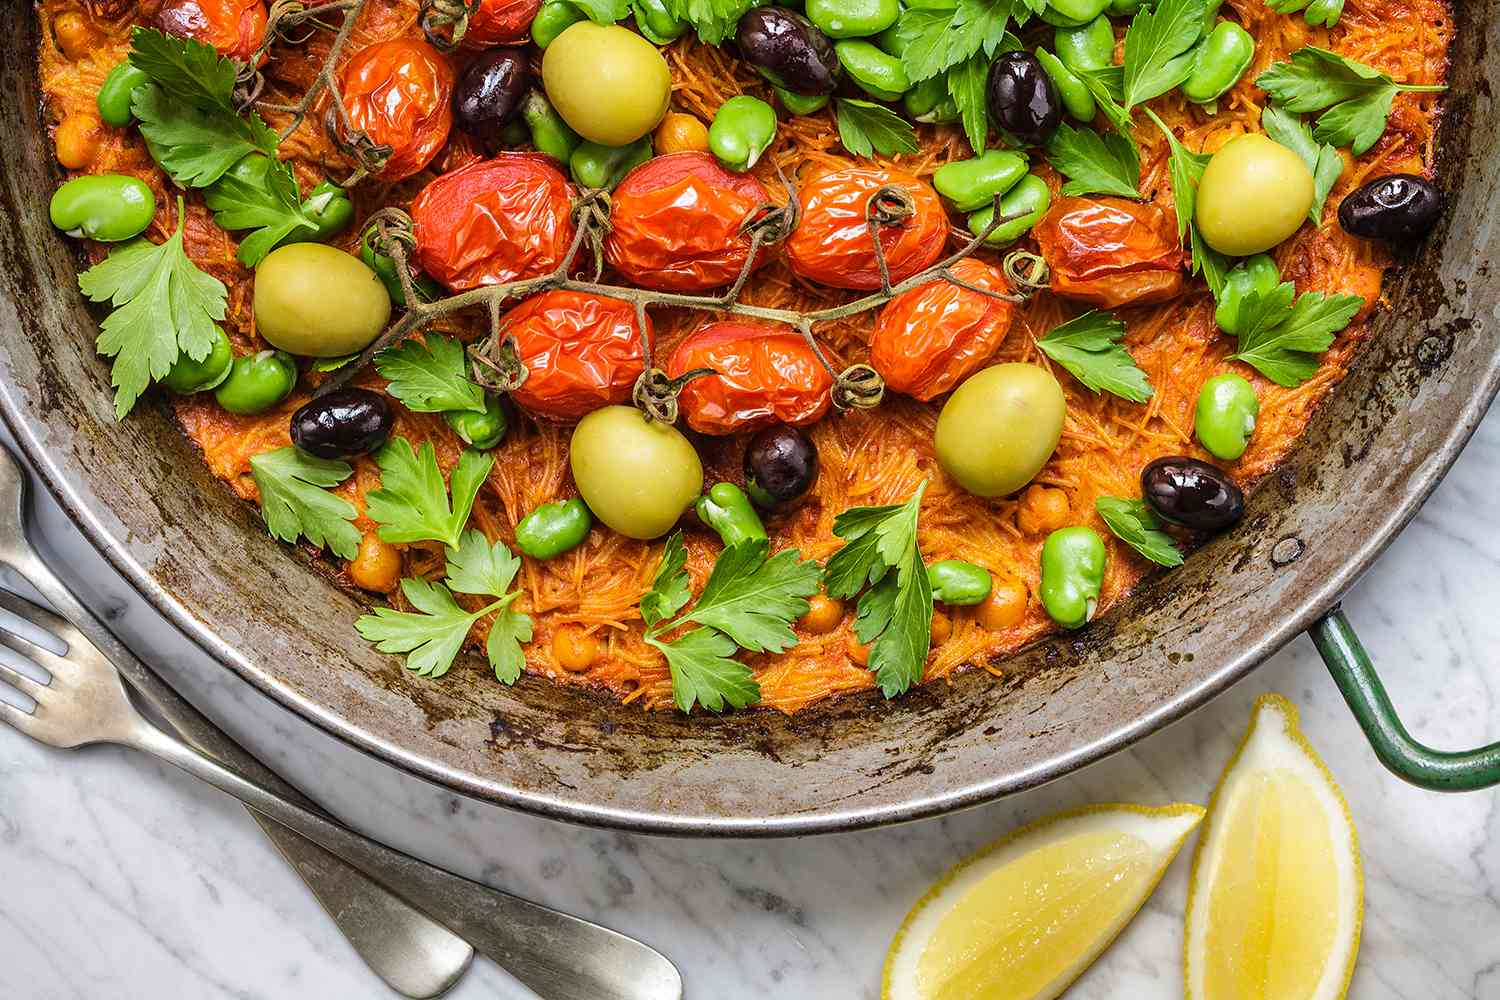 This traditional Catalan dish of baked noodles has been modernised with chickpeas, vine roasted tomatoes, olives and peeled fava beans. Accompanied with garlic alioli and lemon wedges, ready for Sunday lunch.